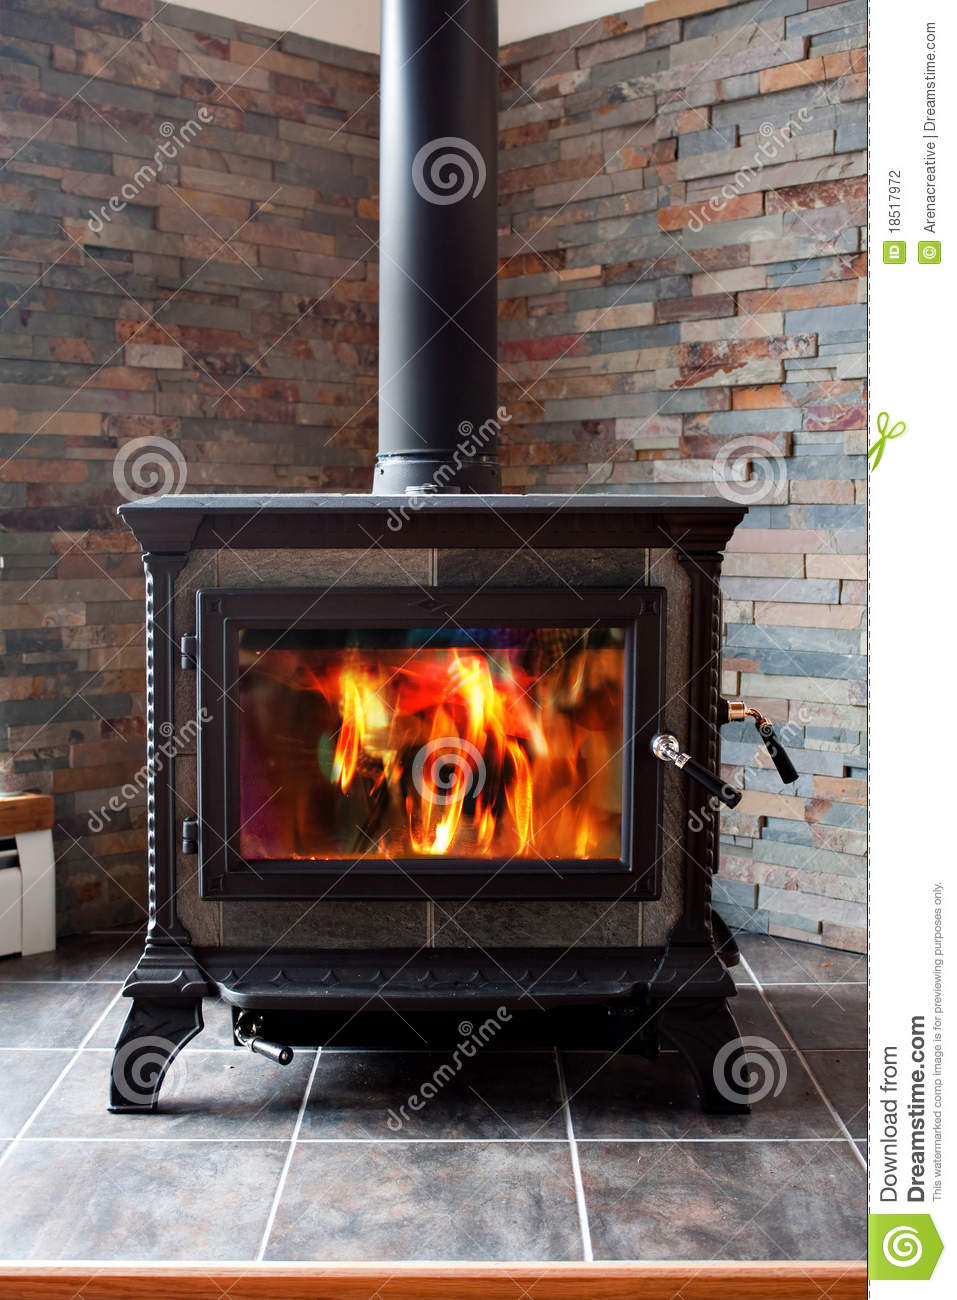 Burning Cast Iron Wood Stove Stock Photography - Burning Cast Iron Wood Stove Stock Photography - Image: 18517972